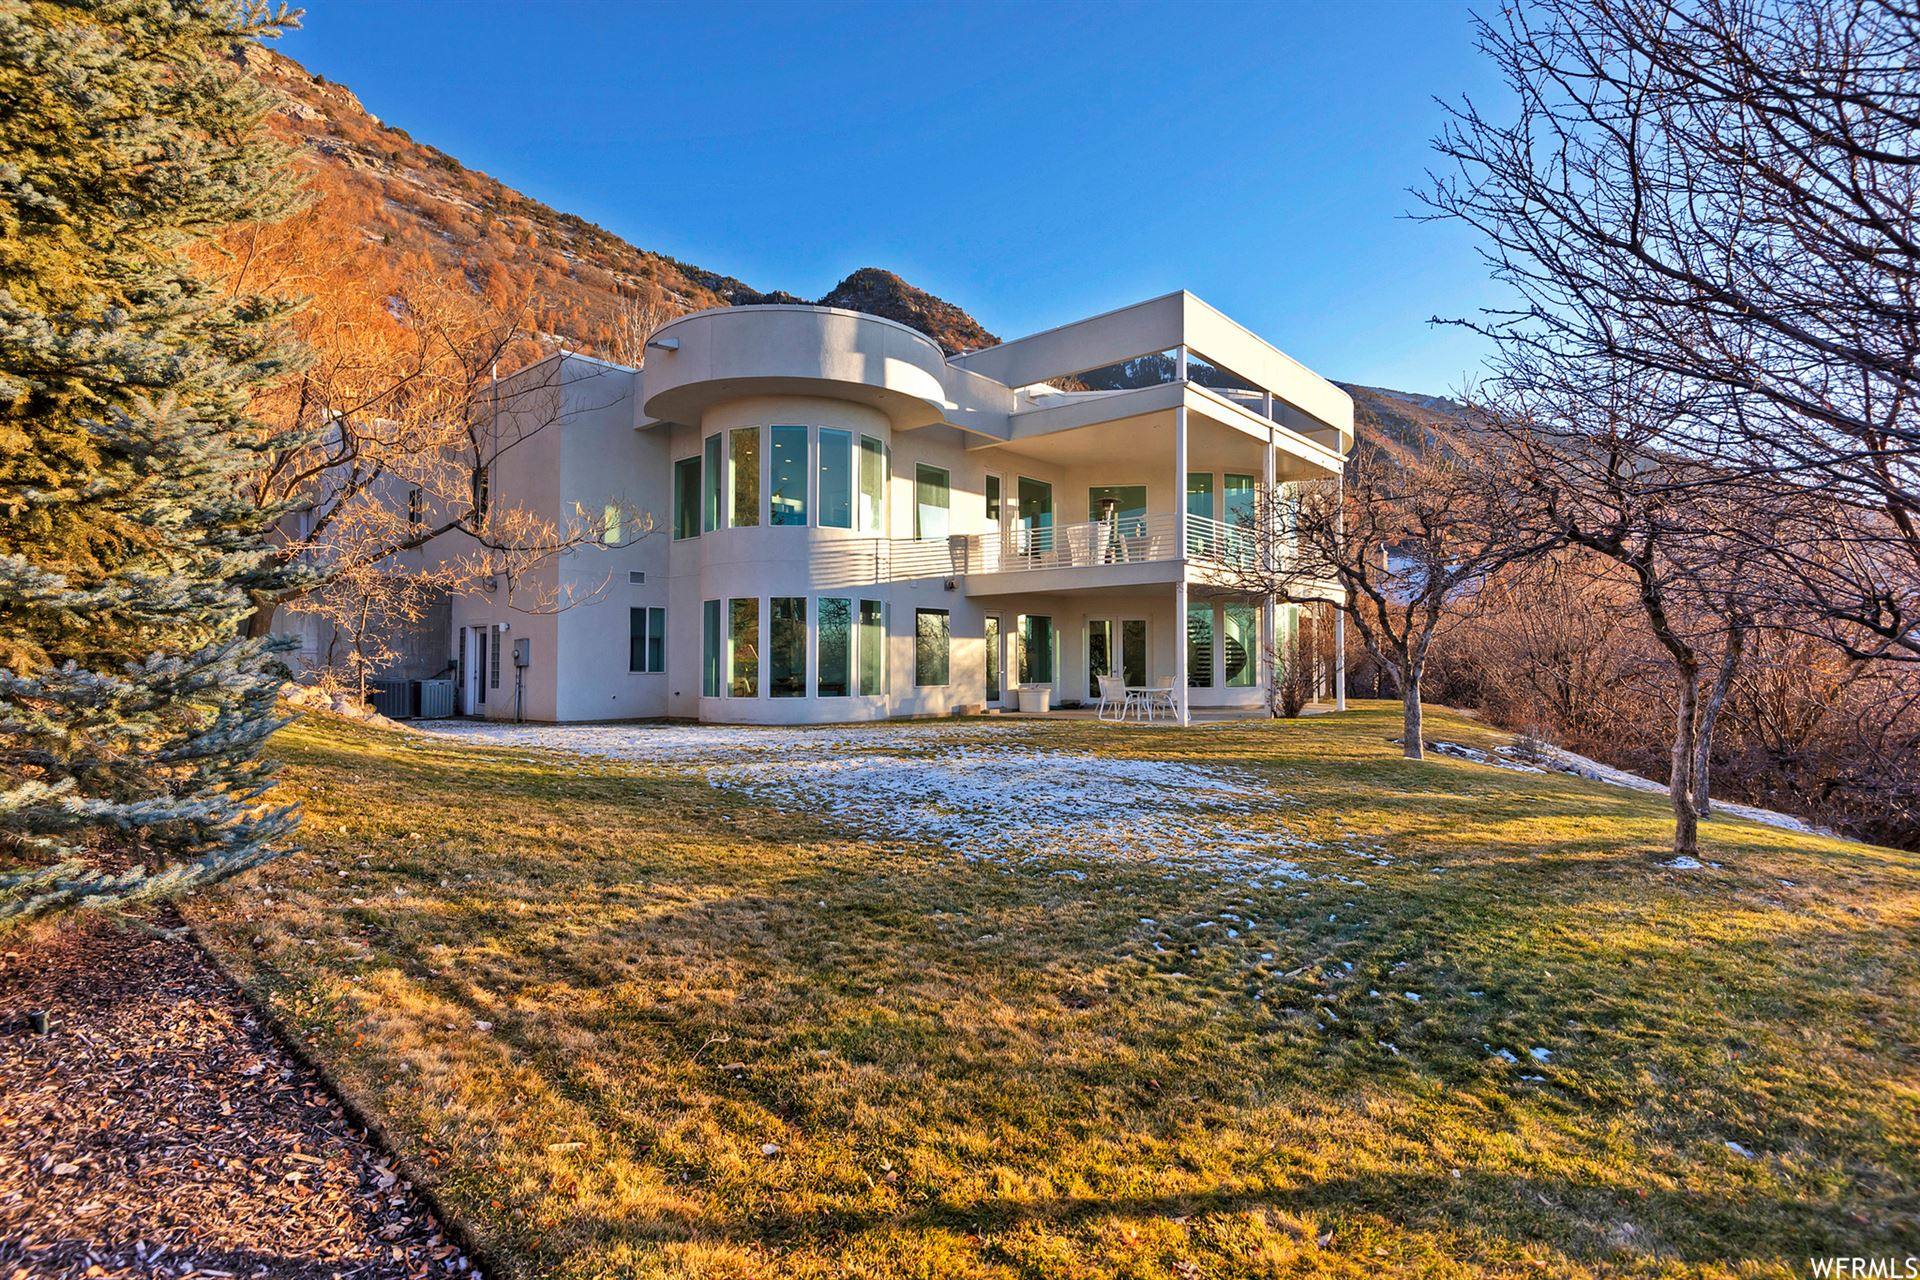 Photo of 11242 EAGLE VIEW DR, Sandy, UT 84092 (MLS # 1721075)